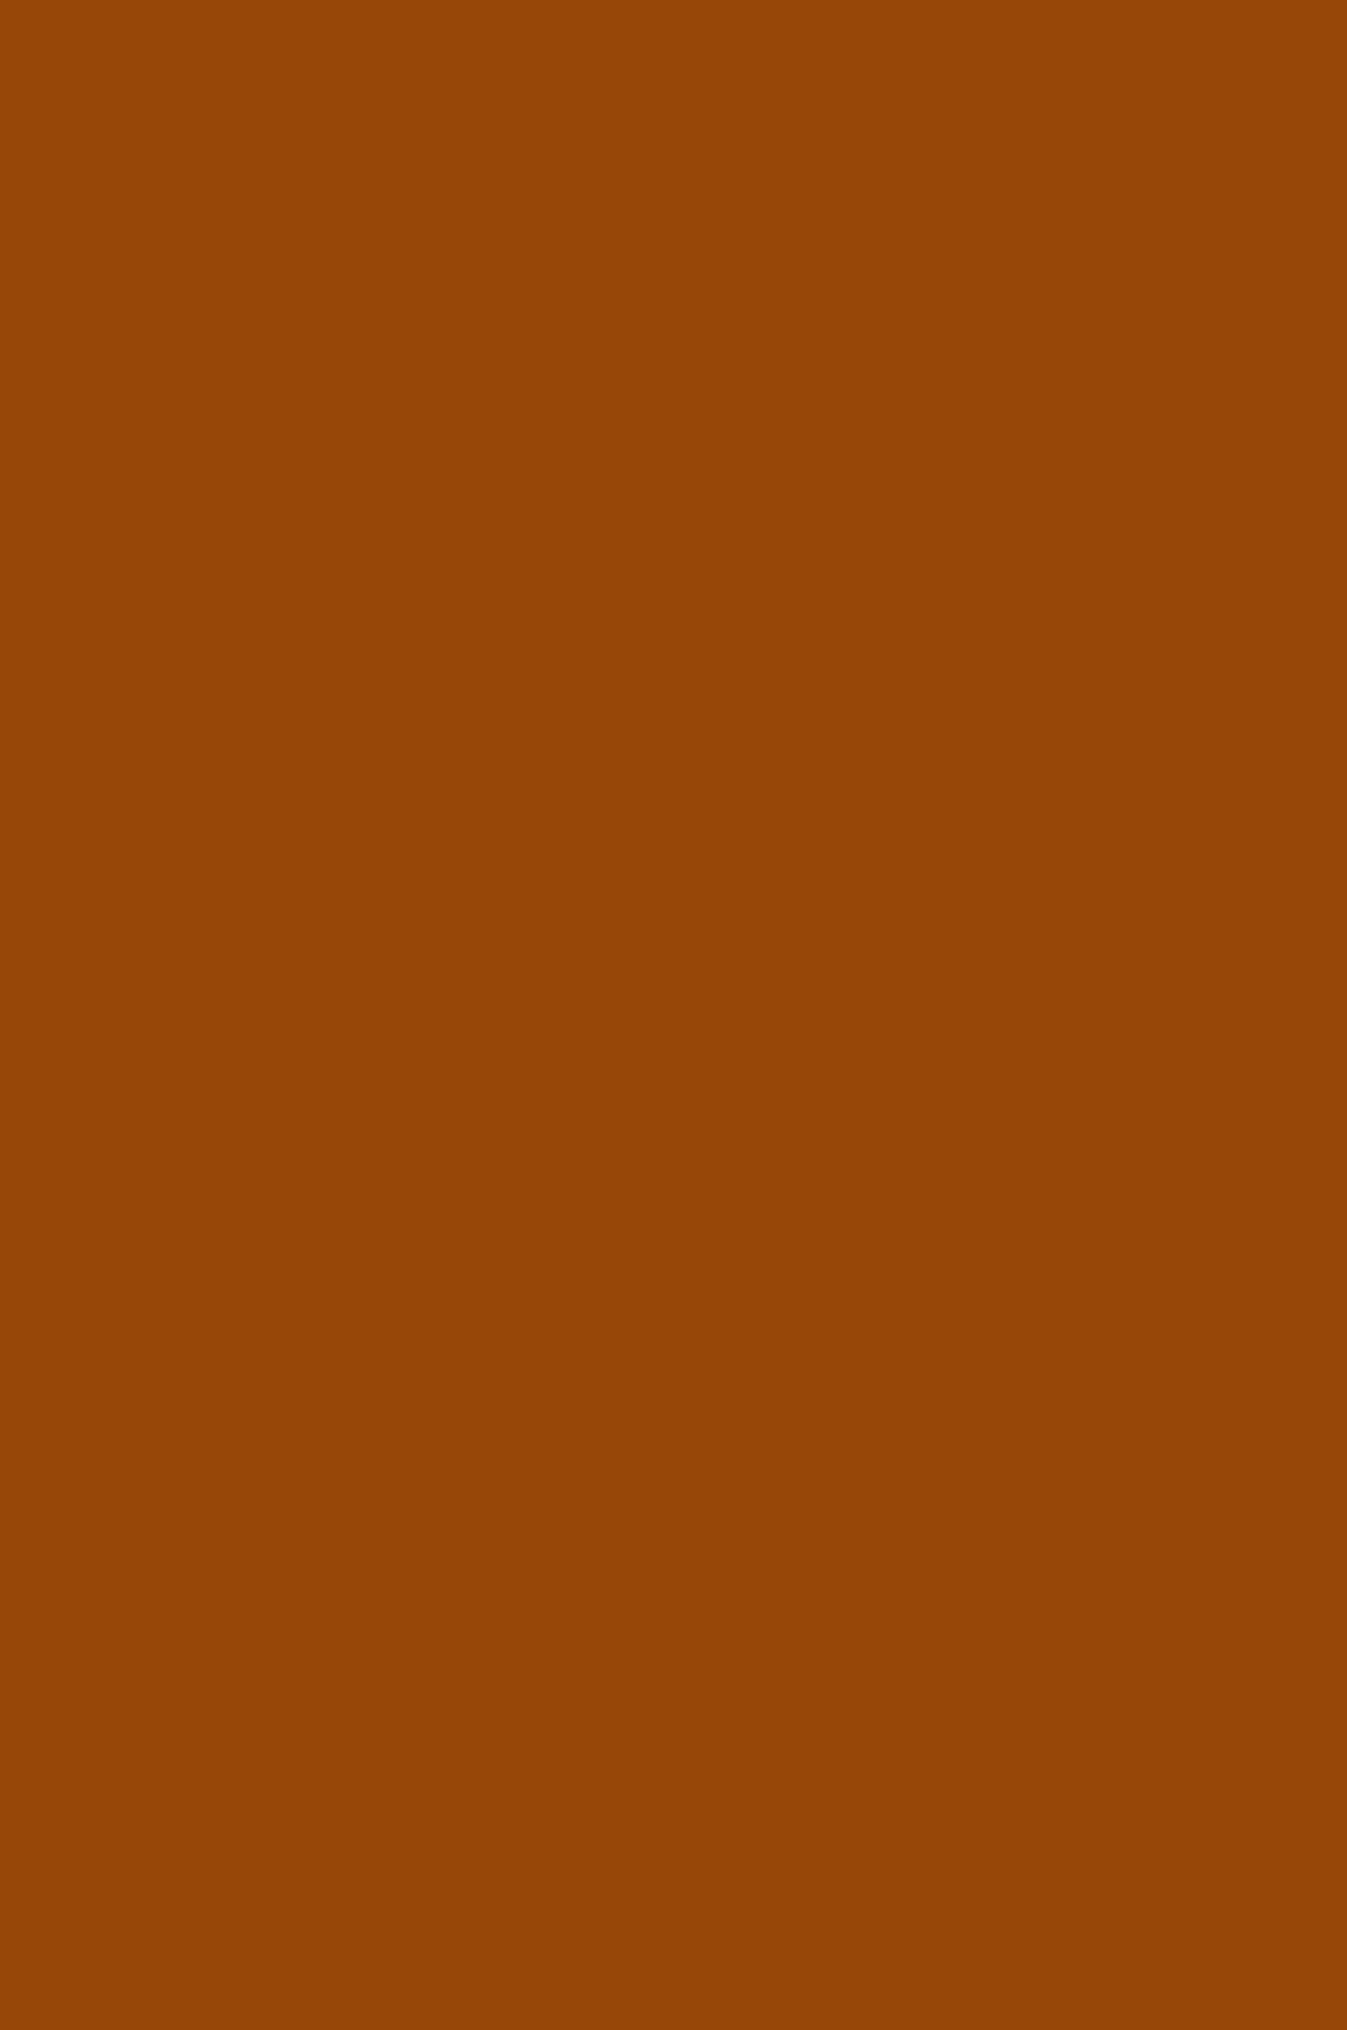 Magi Wap Acrylic Color Burnt Sienna 1200ml Terra di siena, meaning siena earth) is an earth pigment containing iron oxide and manganese oxide. acrylic paint